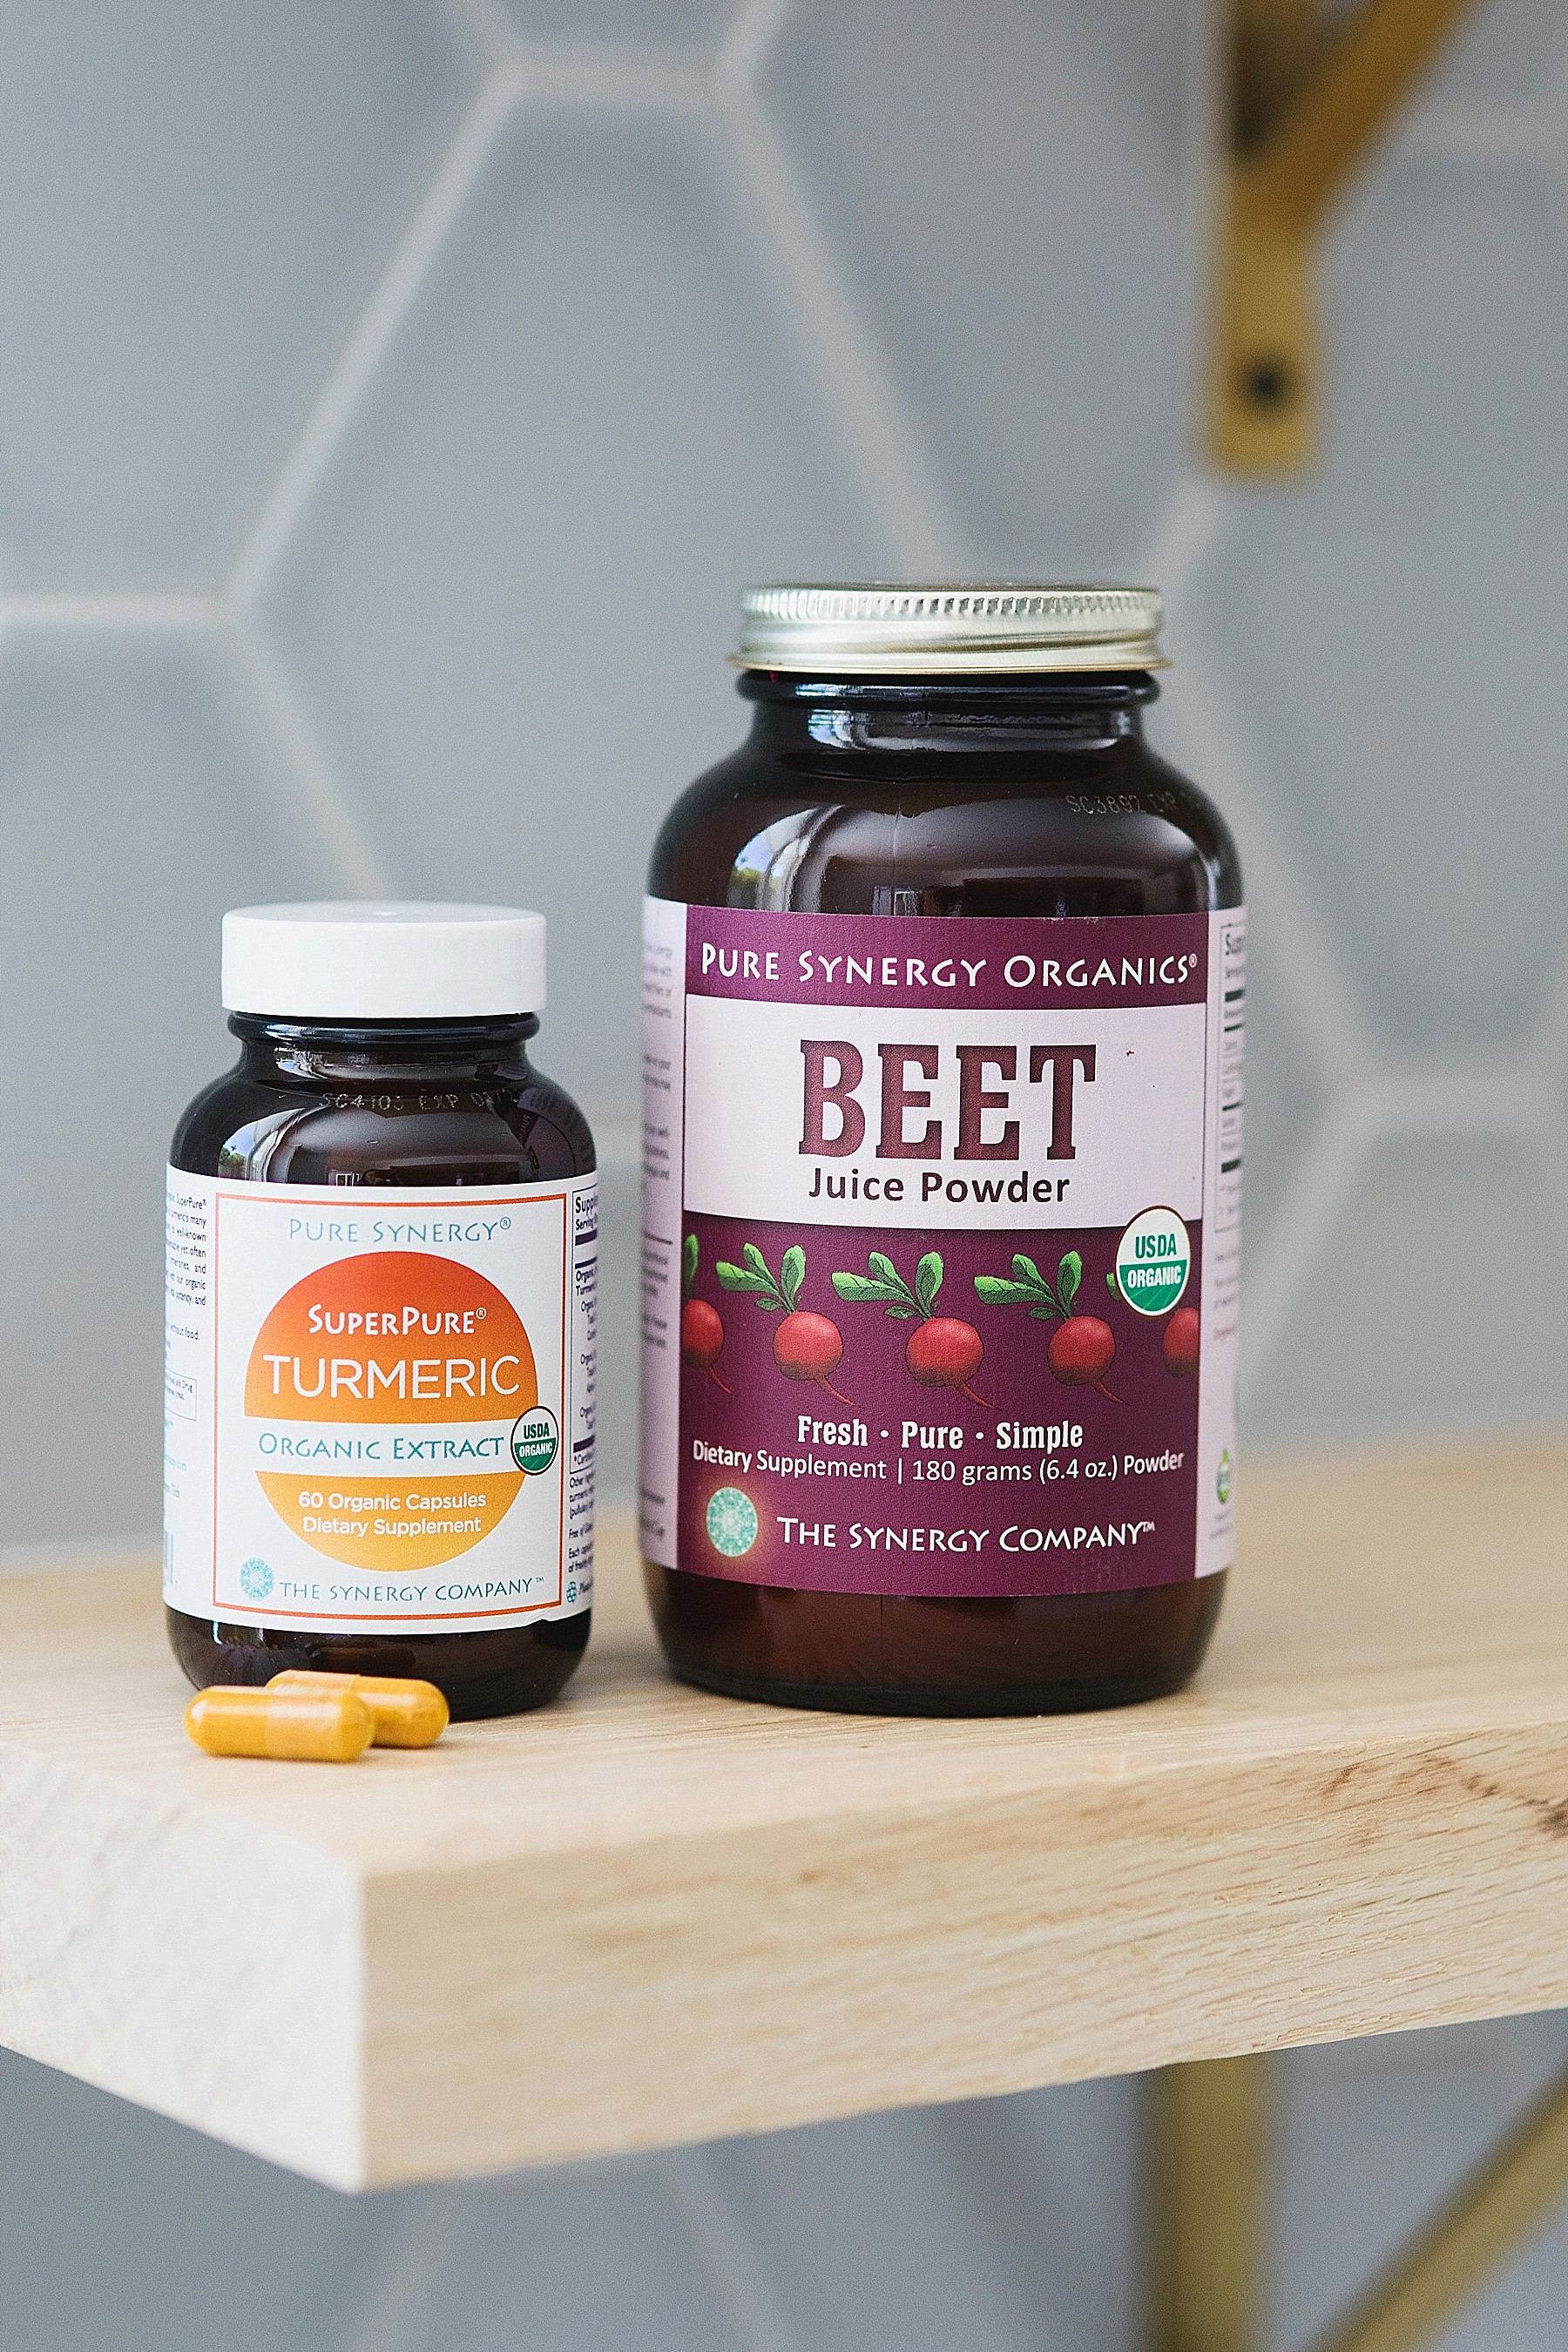 Pure Synergy: Organic Beet Juice Powder & Turmeric Extract